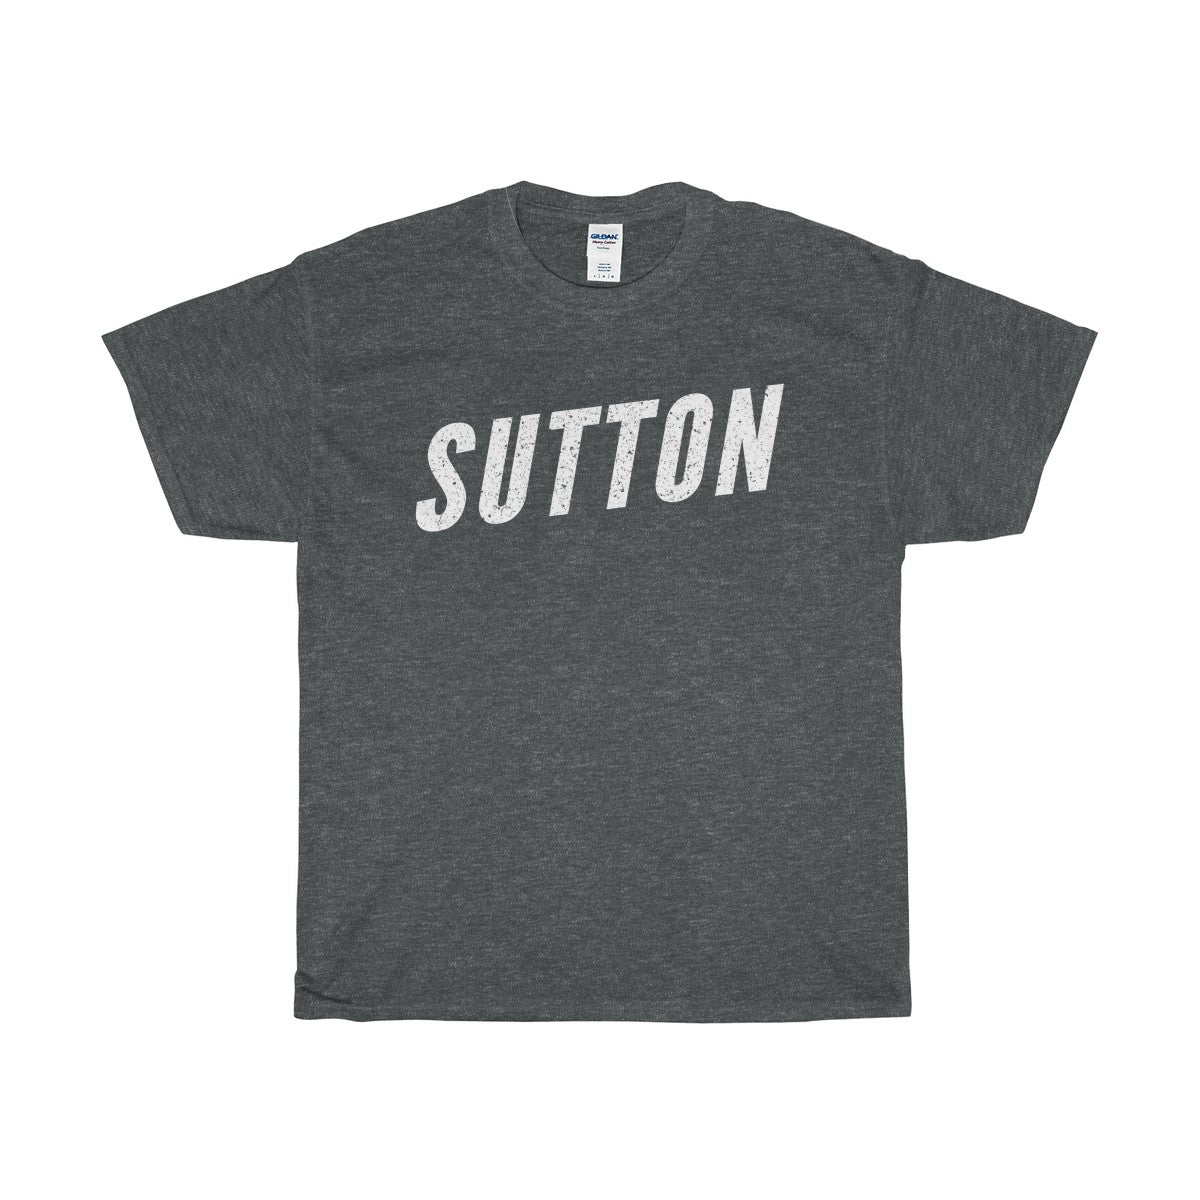 Sutton T-Shirt